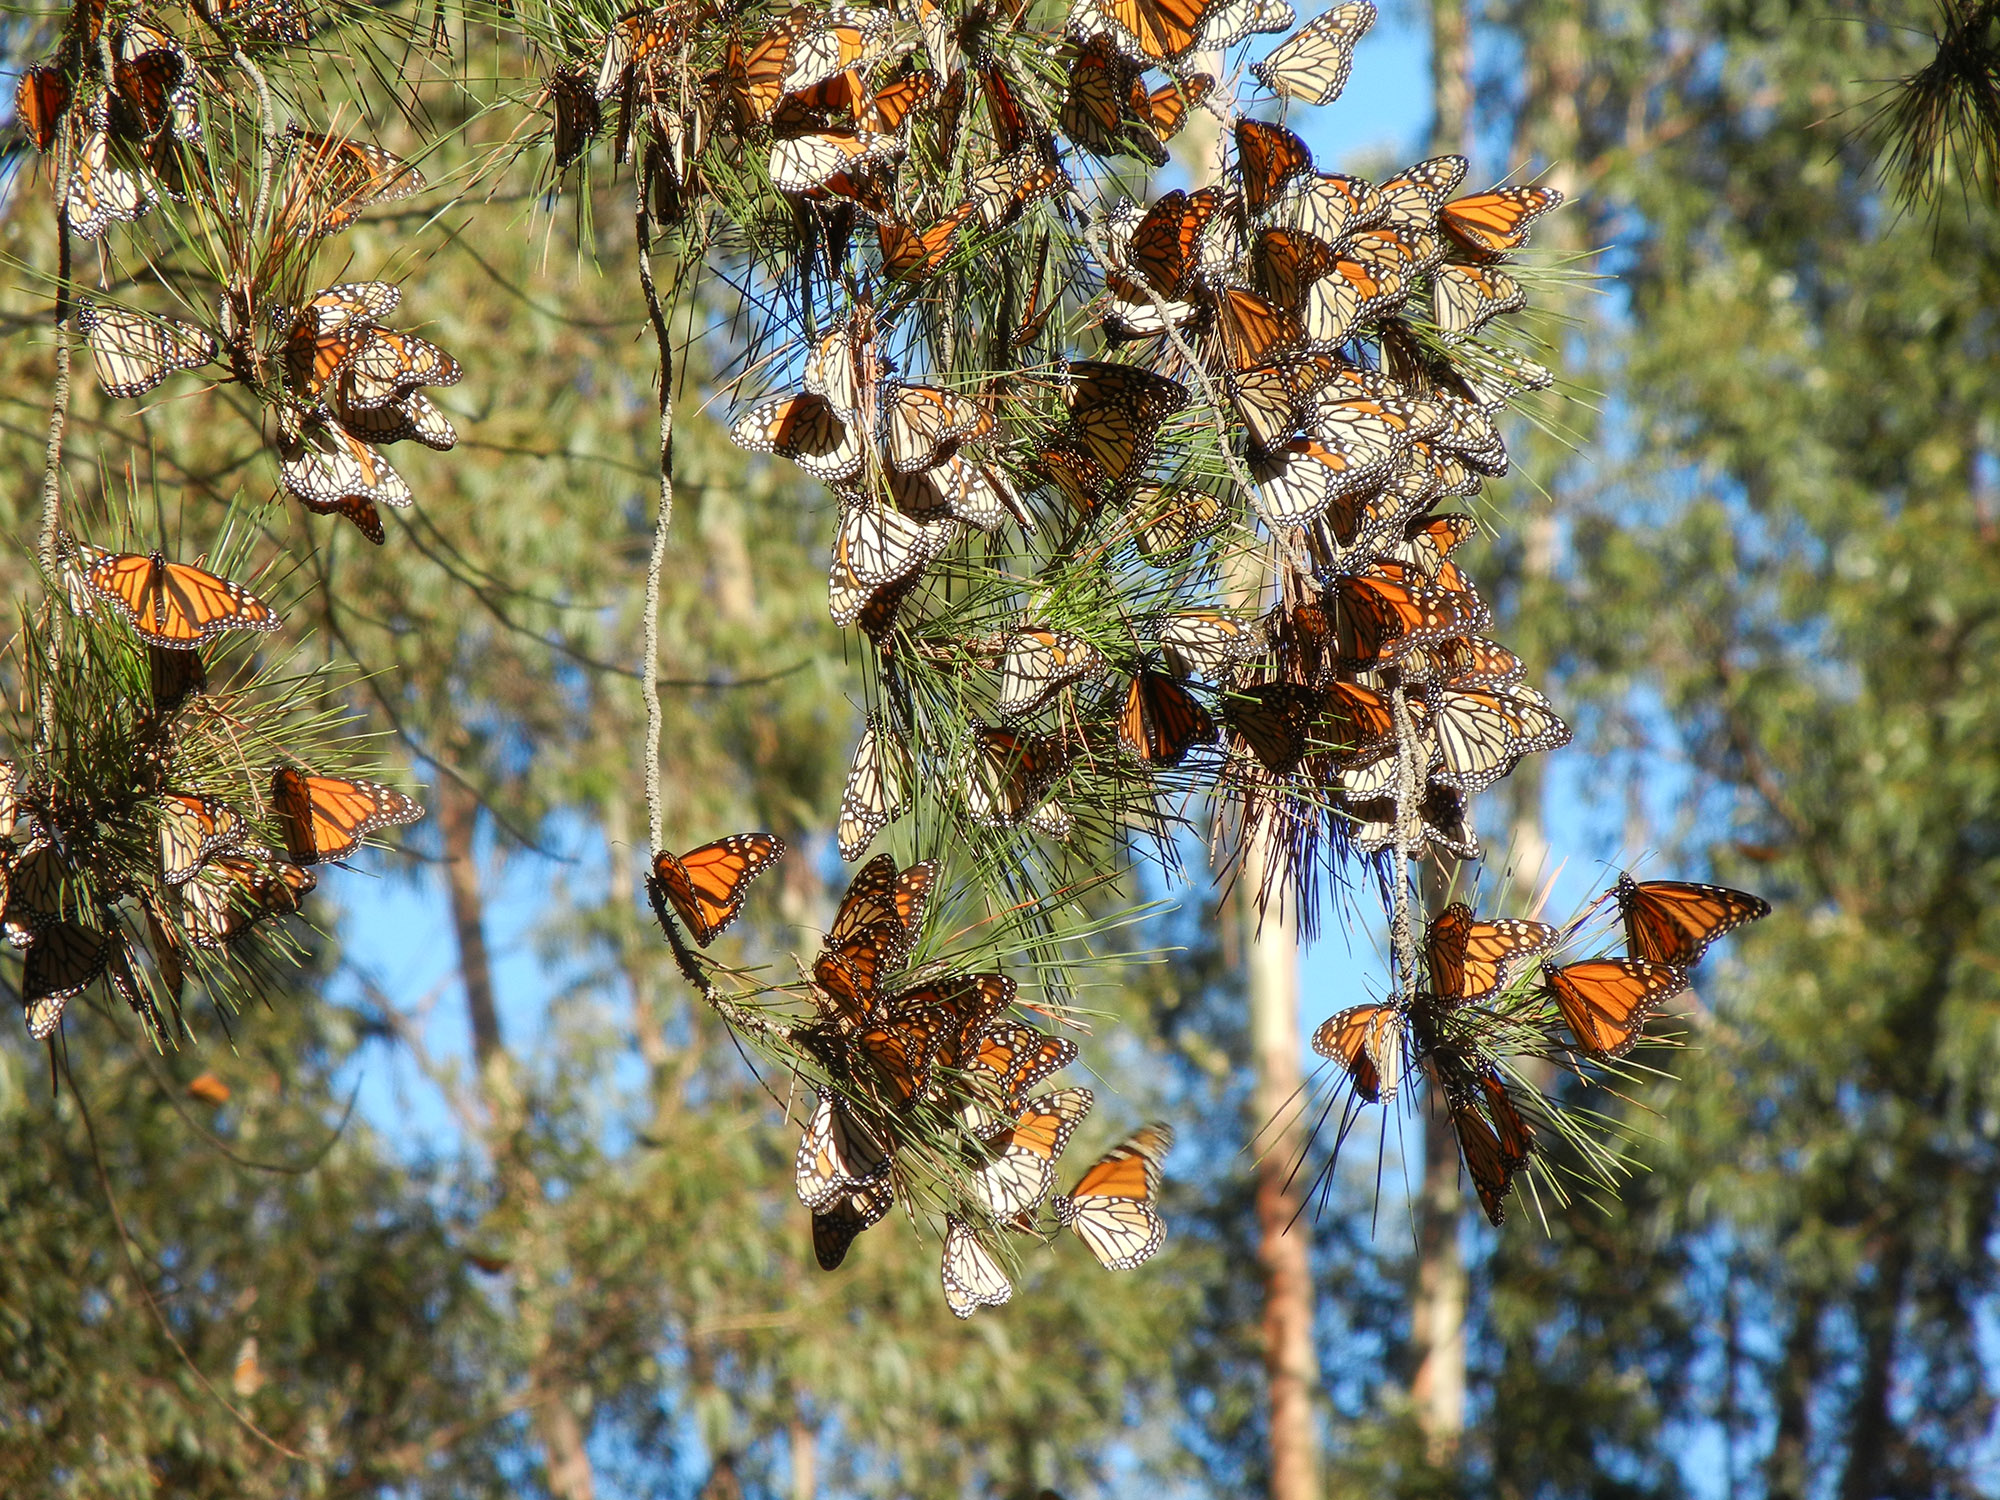 AN overwintering cluster of monarch butterflies in a Monterey pine tree.